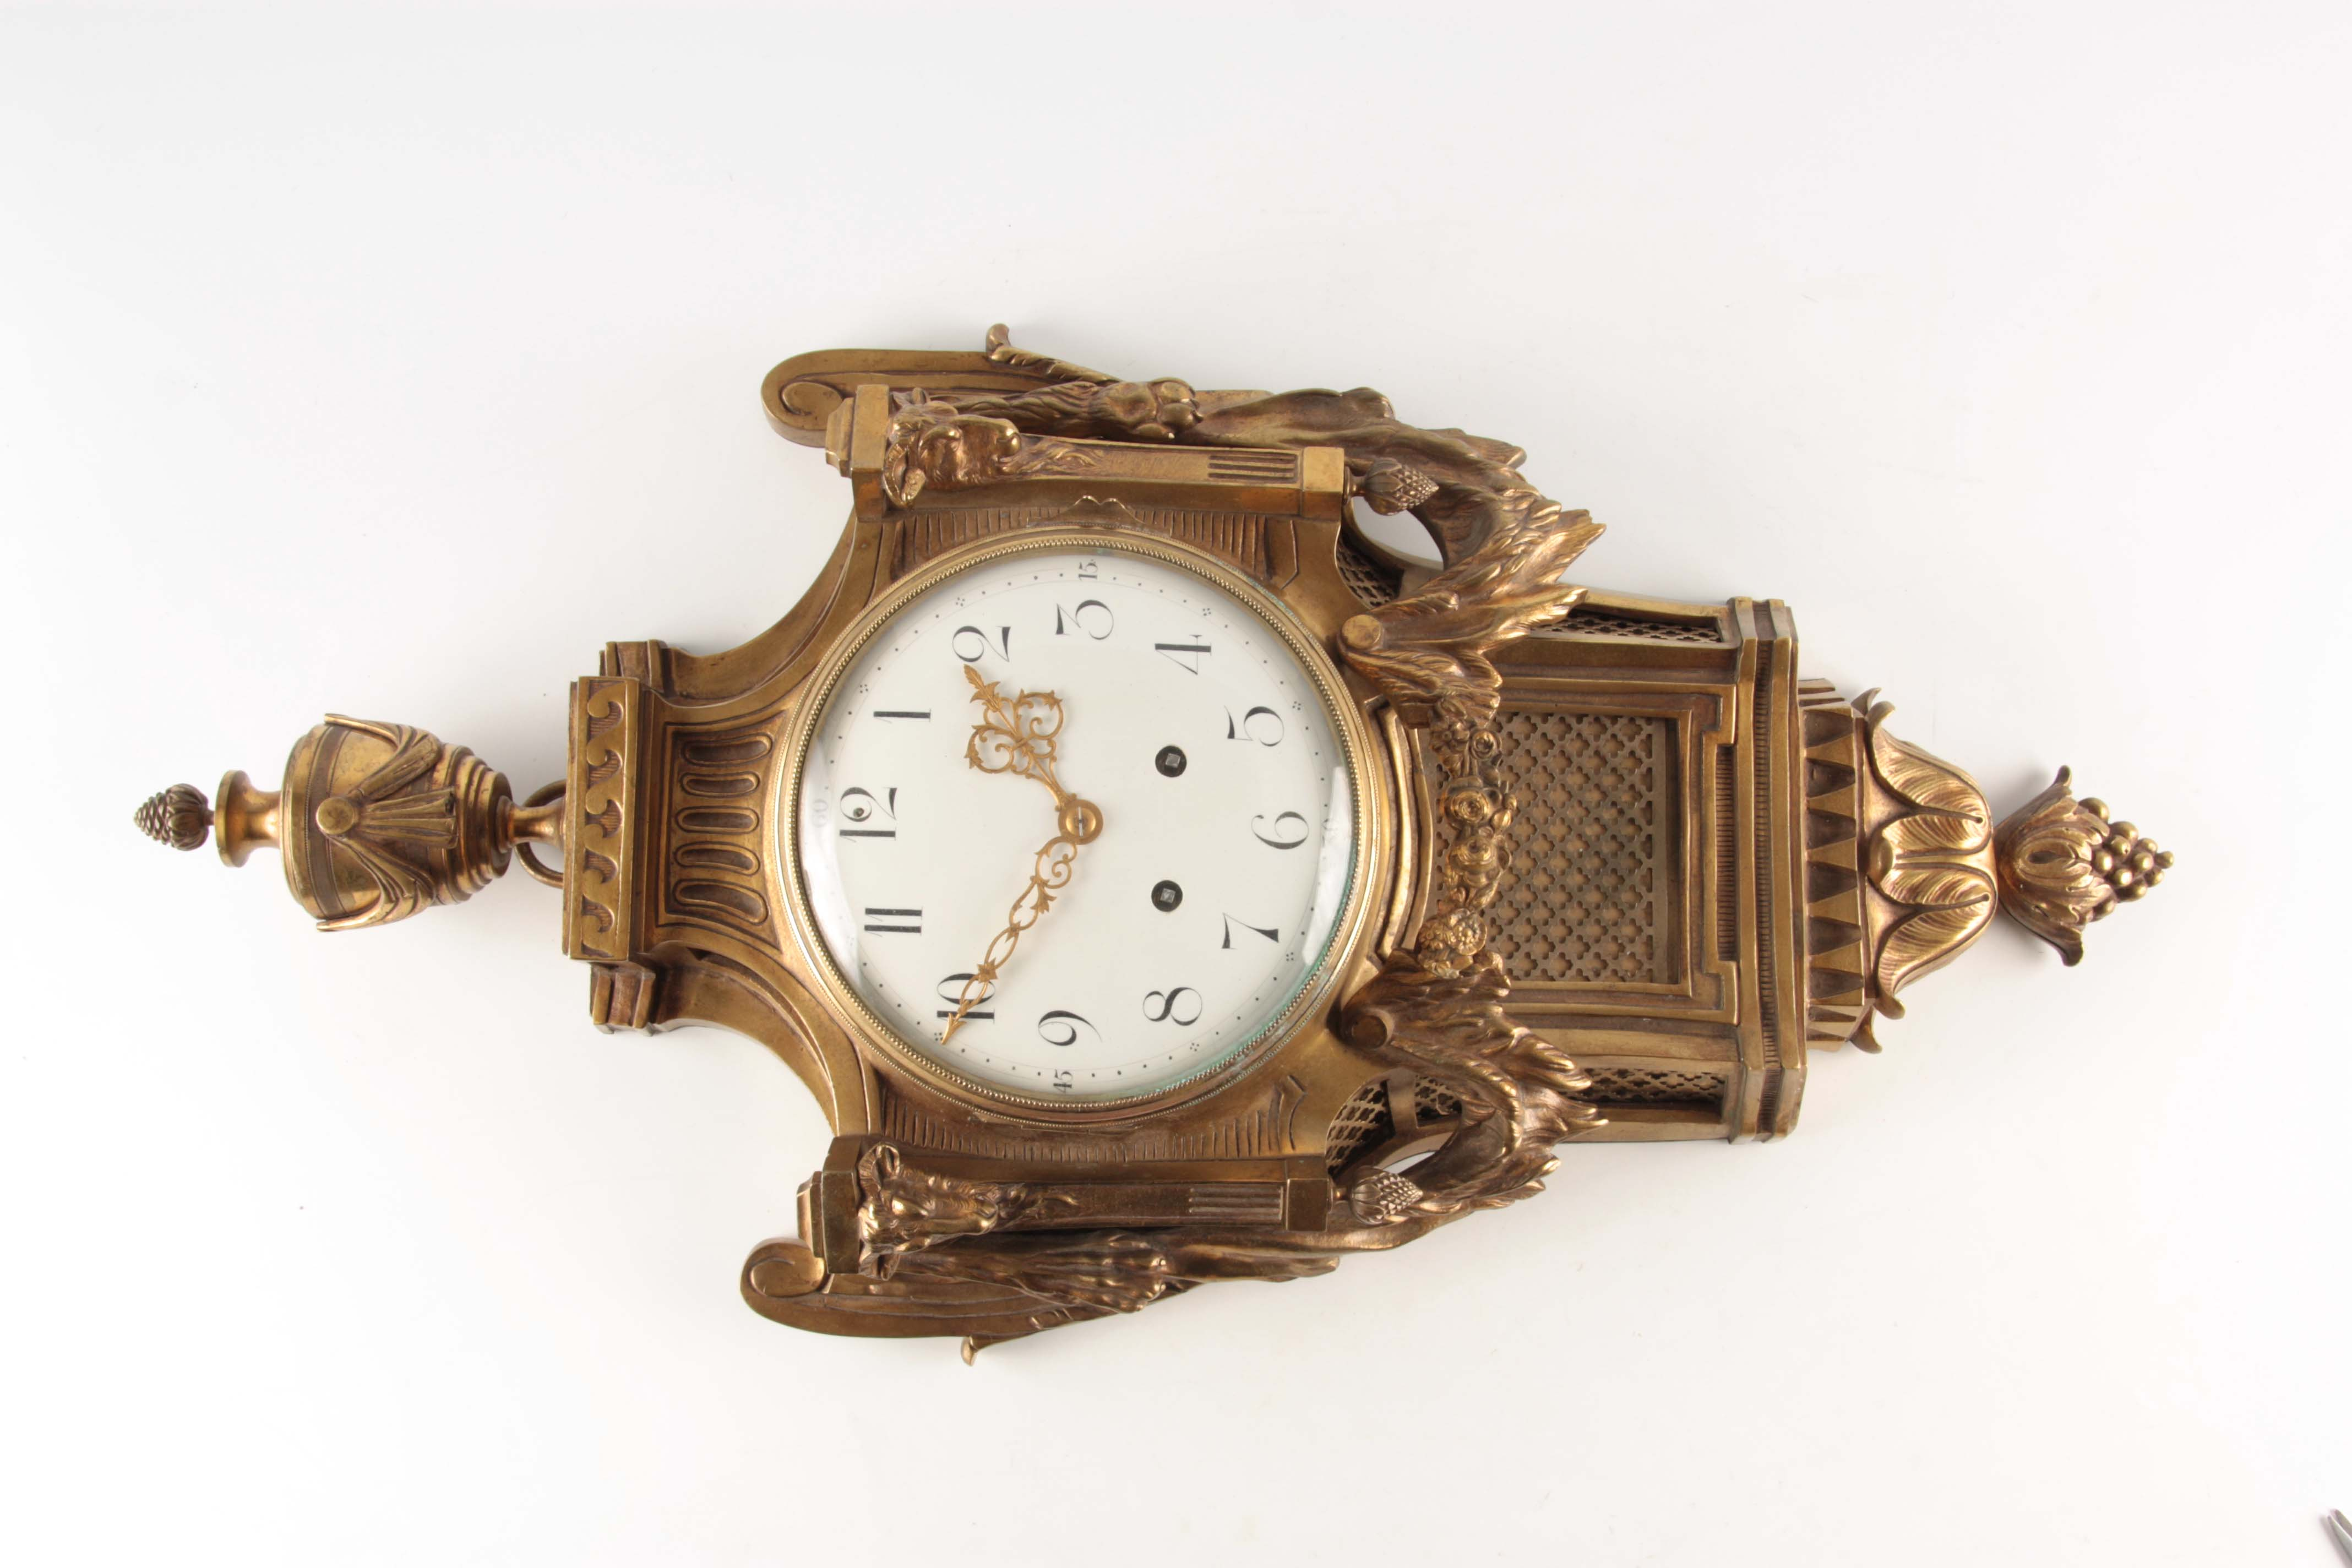 A LATE 19TH CENTURY FRENCH GILT BRASS CARTEL CLOCK with large urn finial and rams head decoration - Image 3 of 4